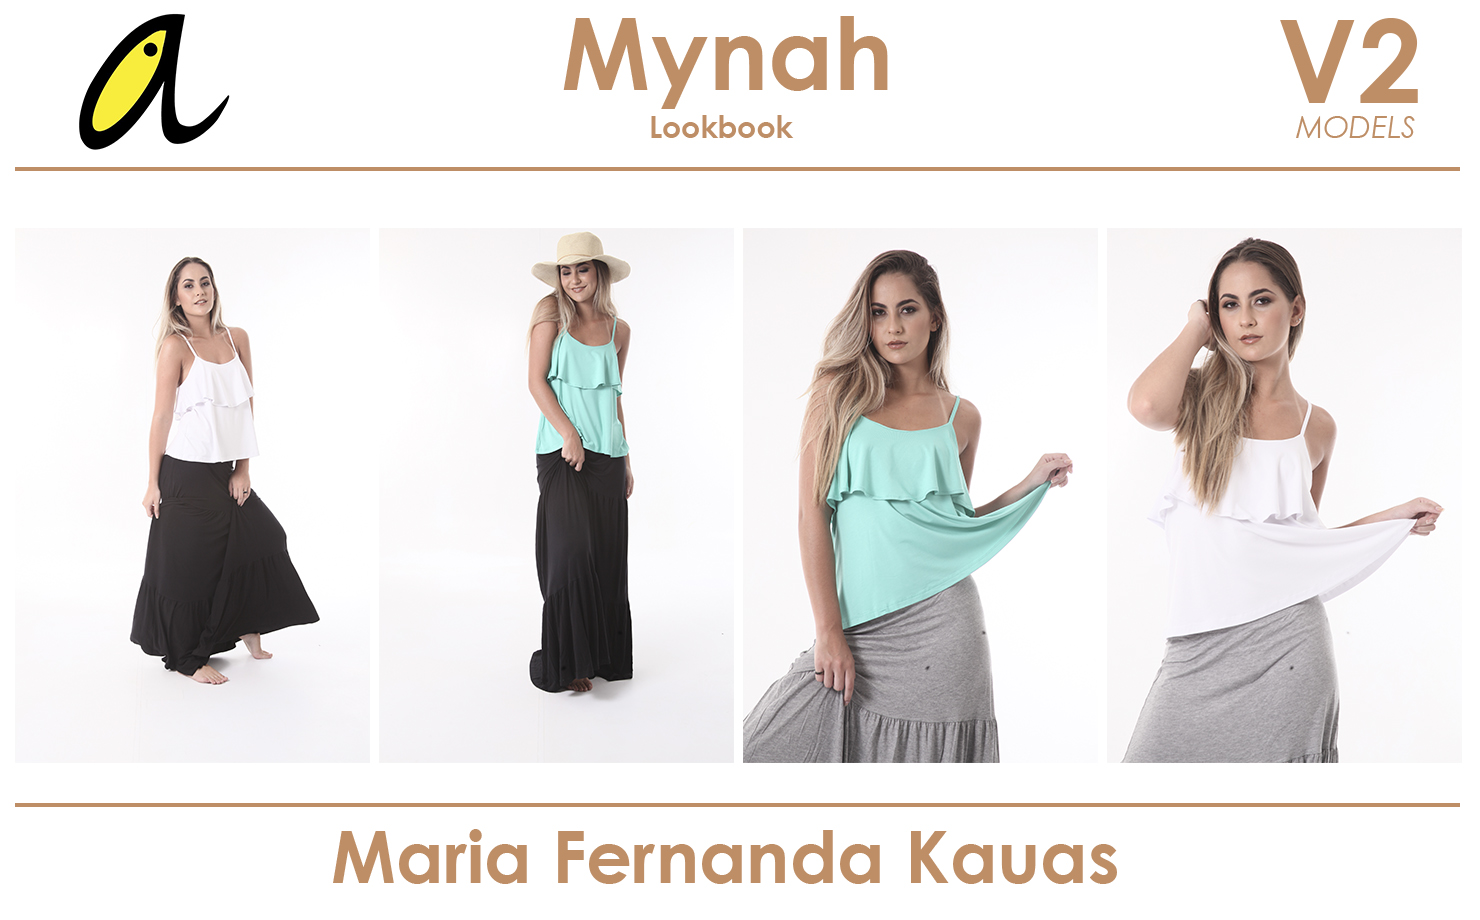 Lookbook Mynah - Mar...